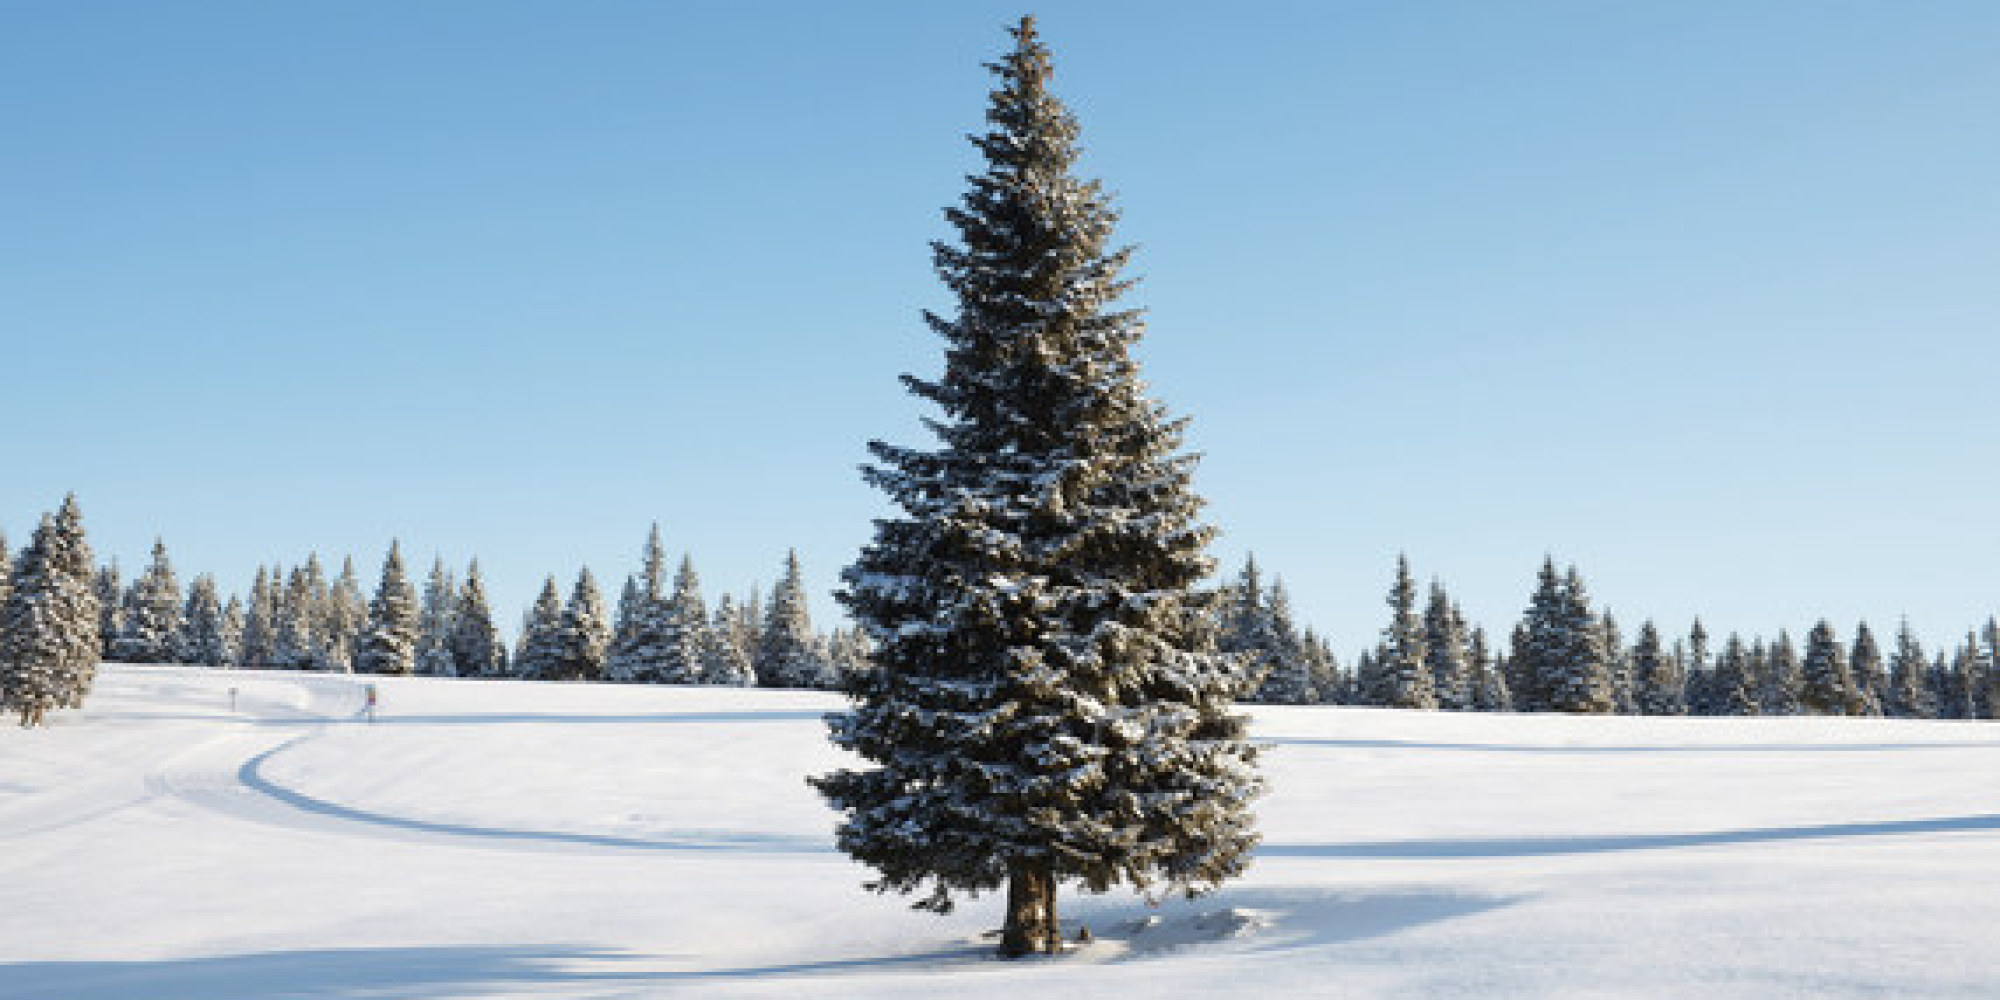 The 5 Top Christmas Tree Types (and Why They're the Best) | HuffPost